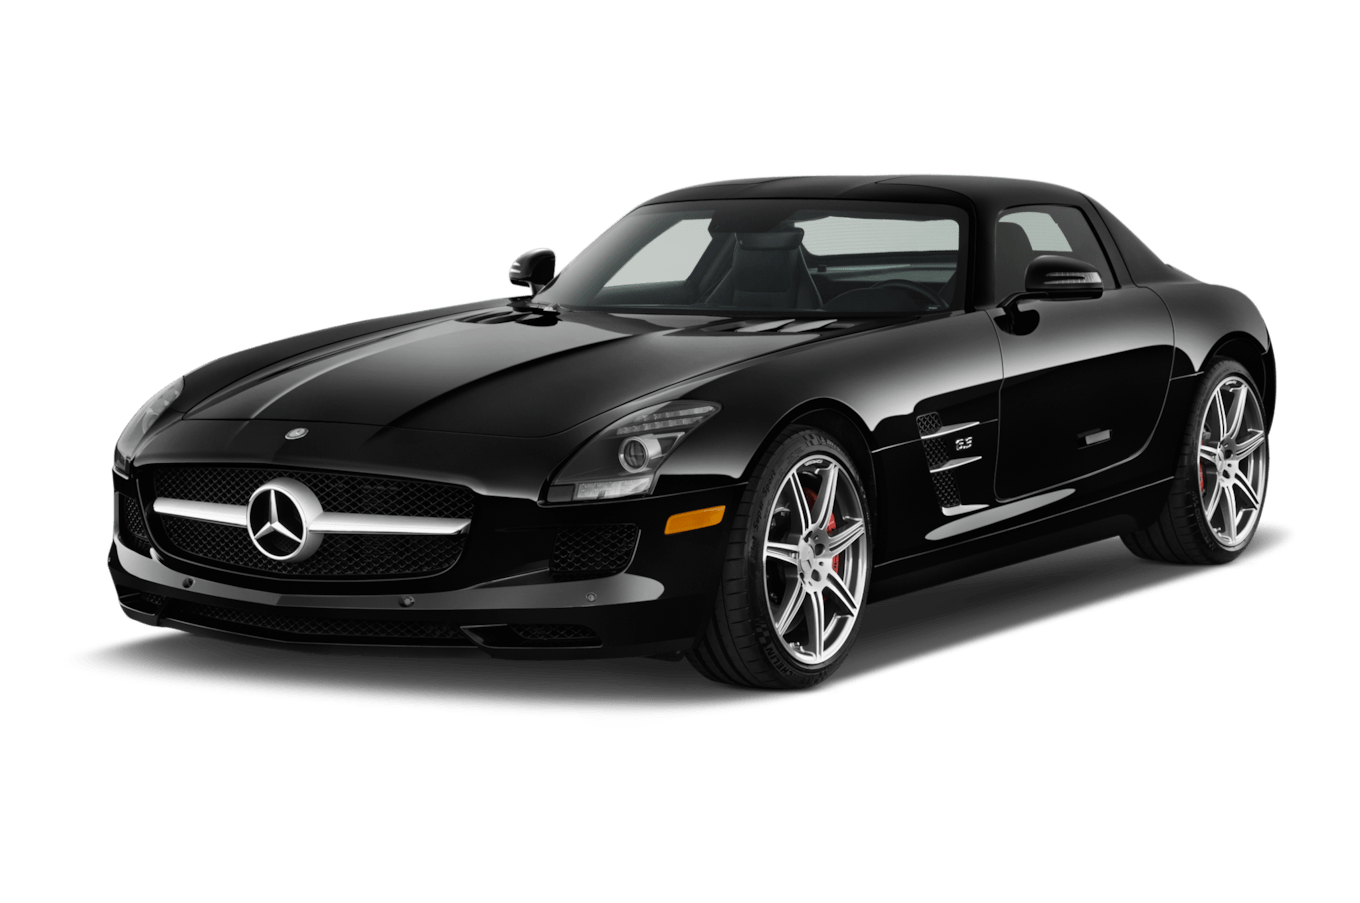 Mercedes - Benz Sls Amg 2012 Mercedes Benz Sls Amg Reviews And Rating Motor Trend